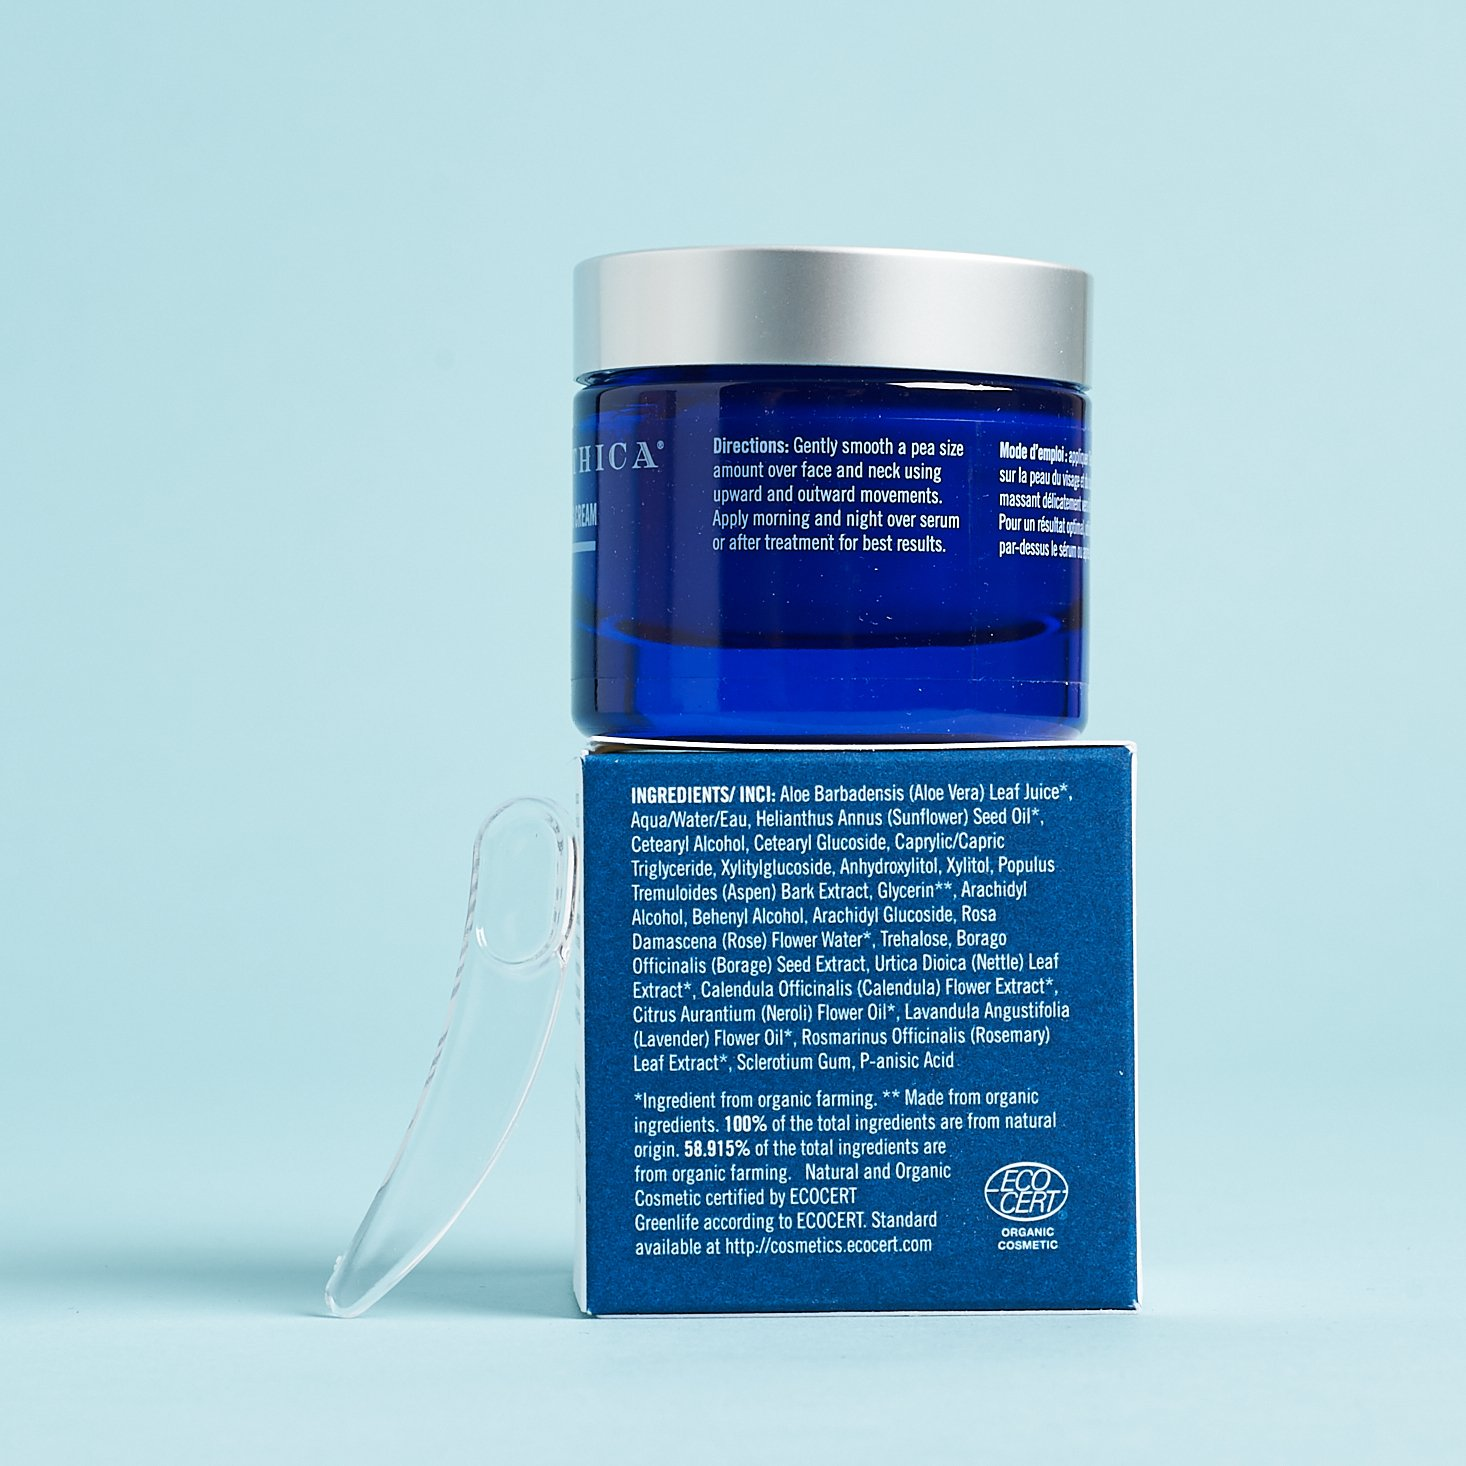 Naturopathica Calendula Essential Hydrating Cream on top of box showing ingredients